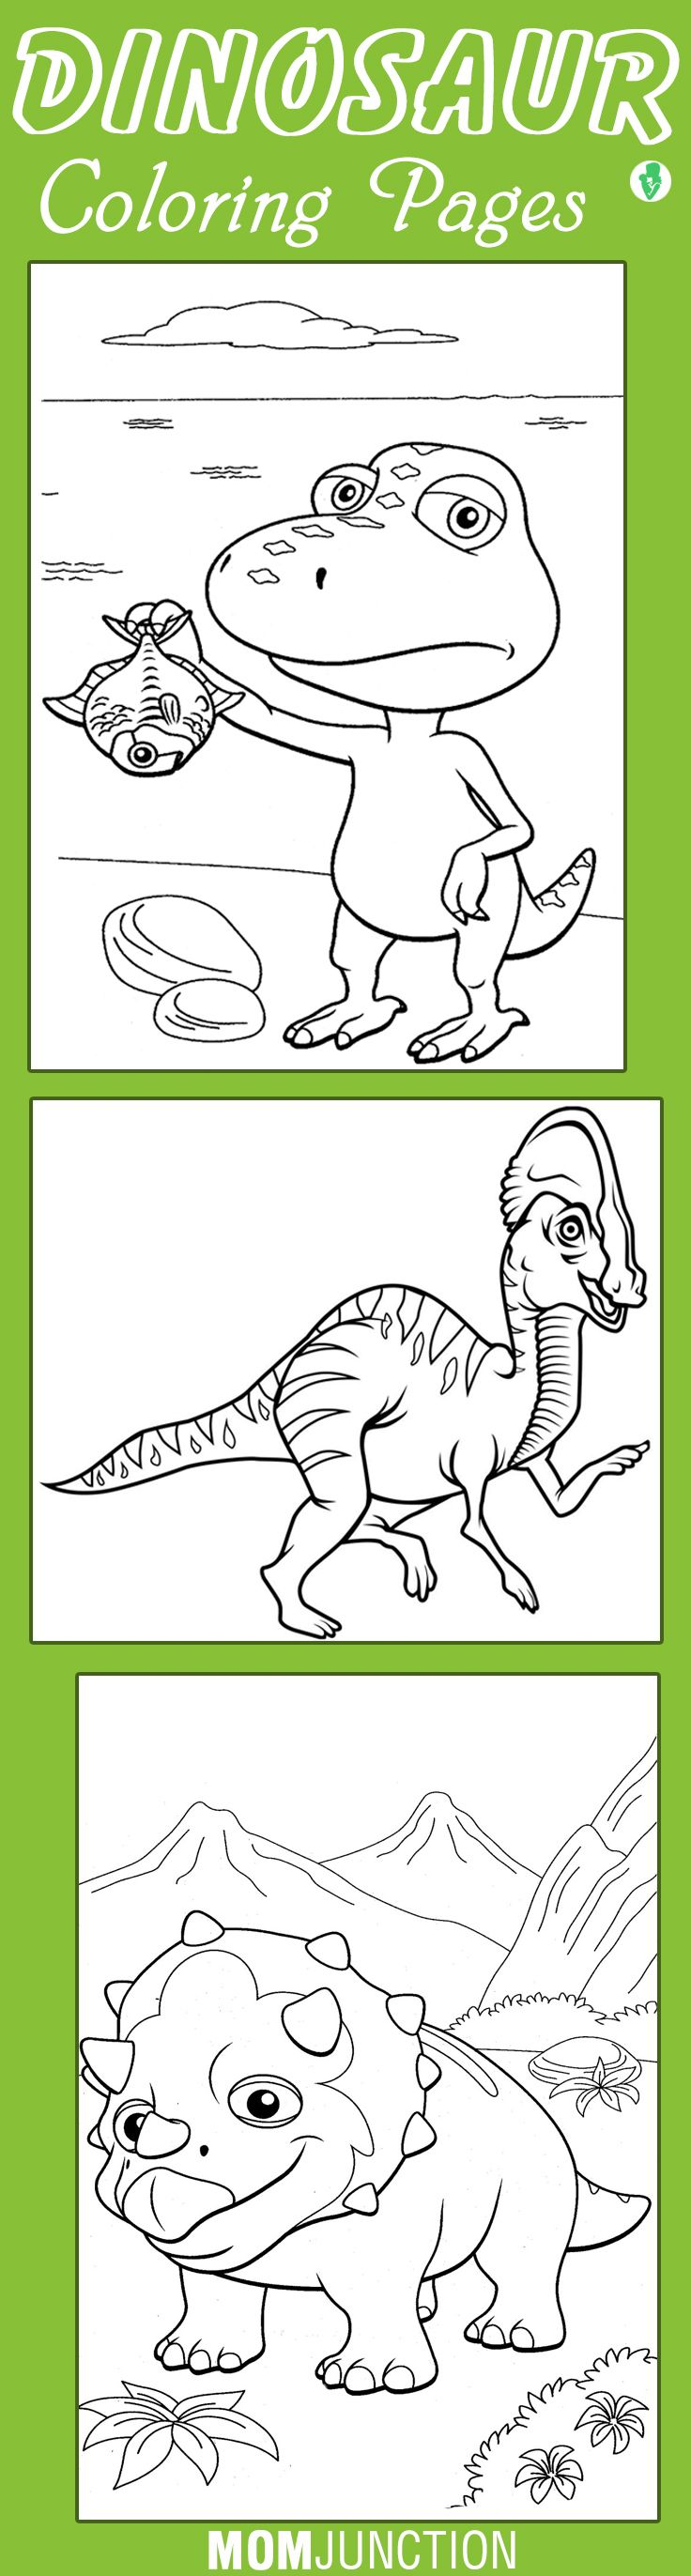 Dinosaur coloring pages to color online - Top 10 Free Printable Dinosaur Train Coloring Pages Online